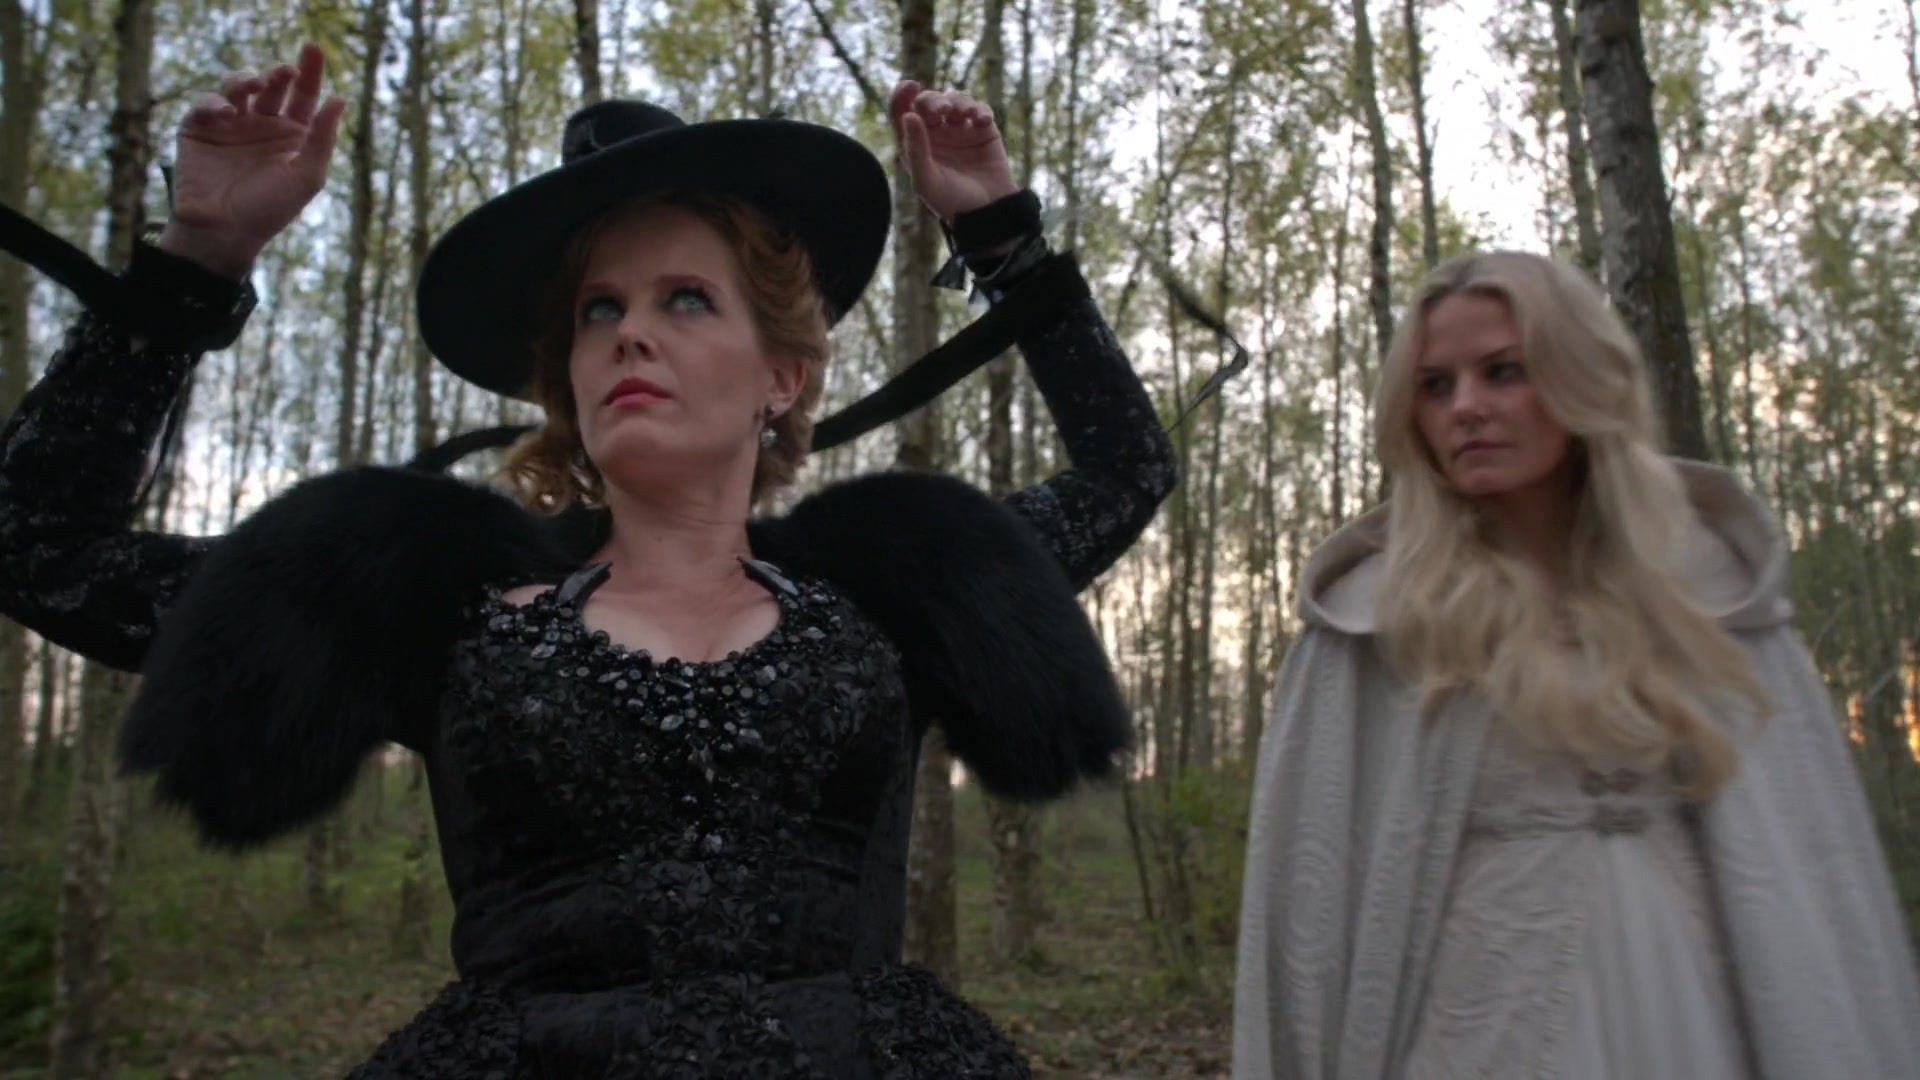 Image - Once Upon a Time - 5x08 - Birth - Zelena Tied Up ...